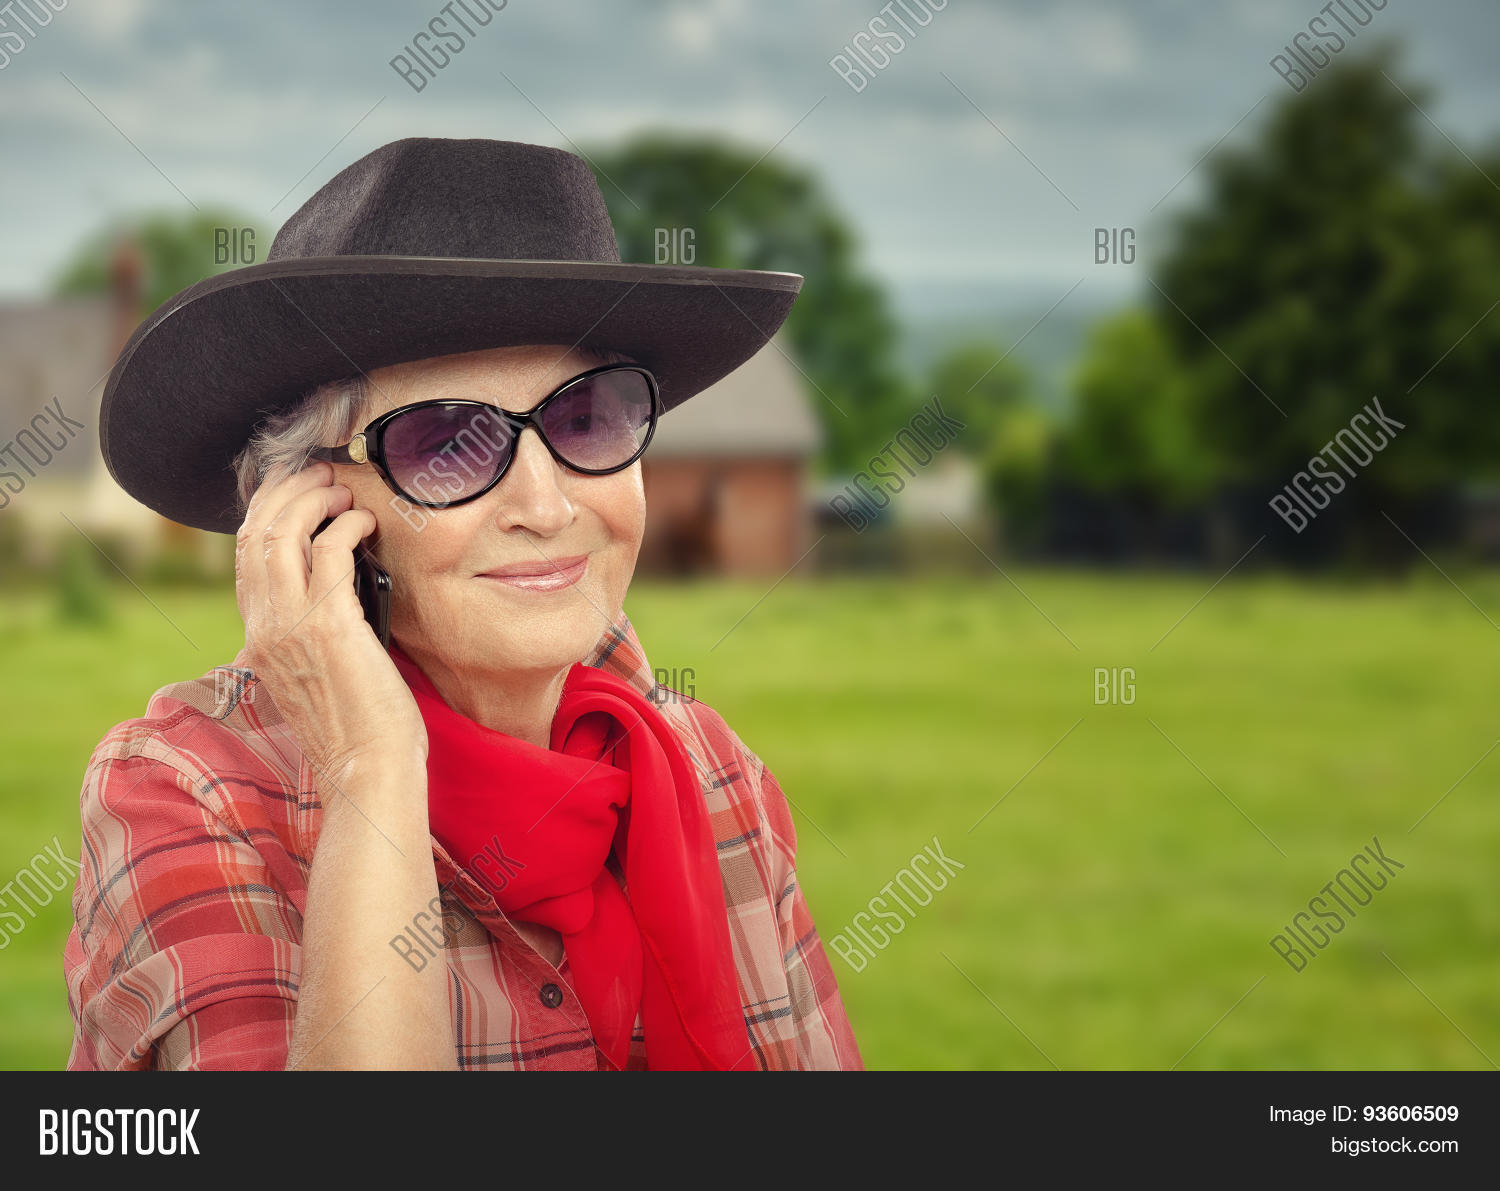 e84185fb80882 Old woman in sunglasses is wearing black cowboy hat and red plaid shirt.  Old cowgirl in red neckerchief is posing on countryside background out ...